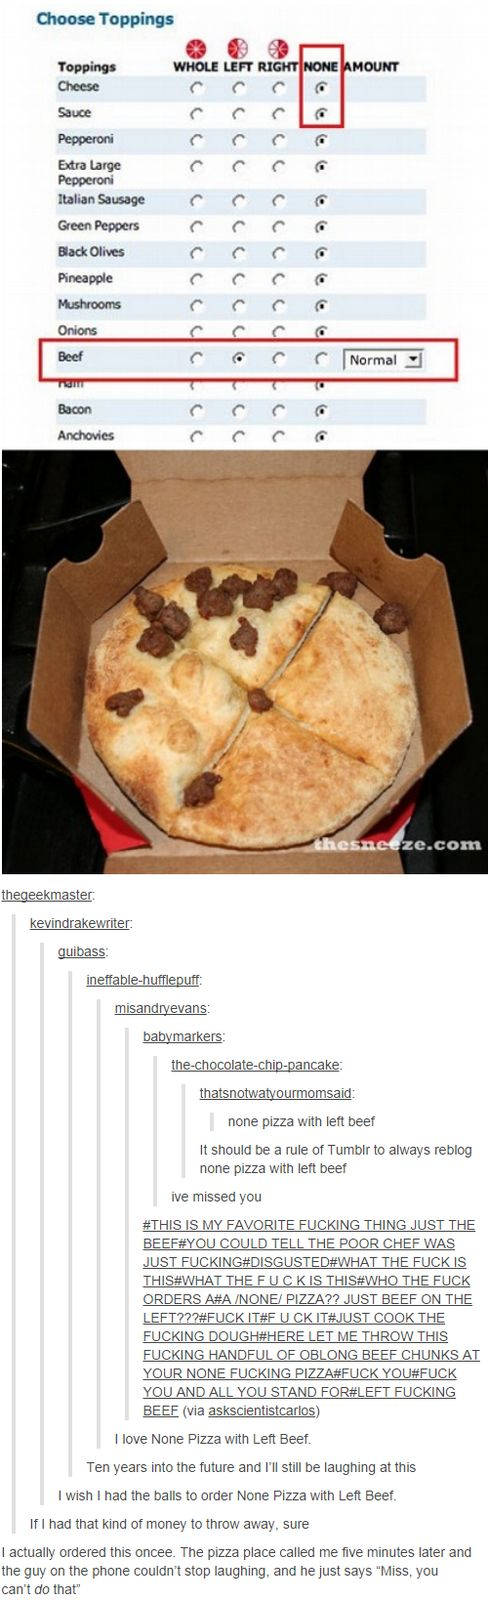 None Pizza With Left Beef, c. 2013. Artist: thatsnotwatyourmomsaid. | 22 Funny Tumblr Posts That Are Practically Works Of Art